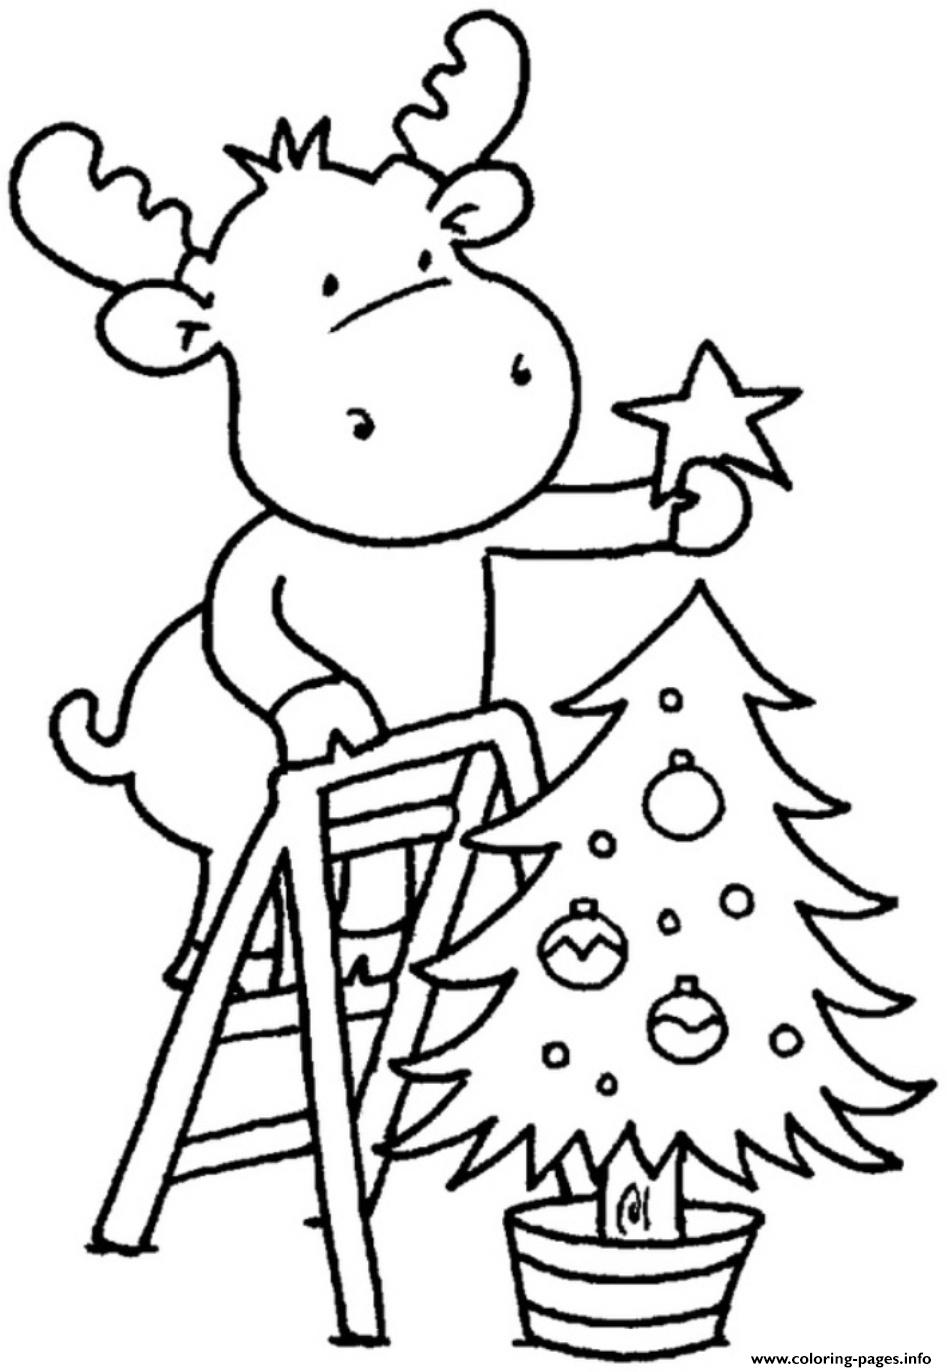 christmas color pages christmas coloring pages for adults best coloring pages pages color christmas